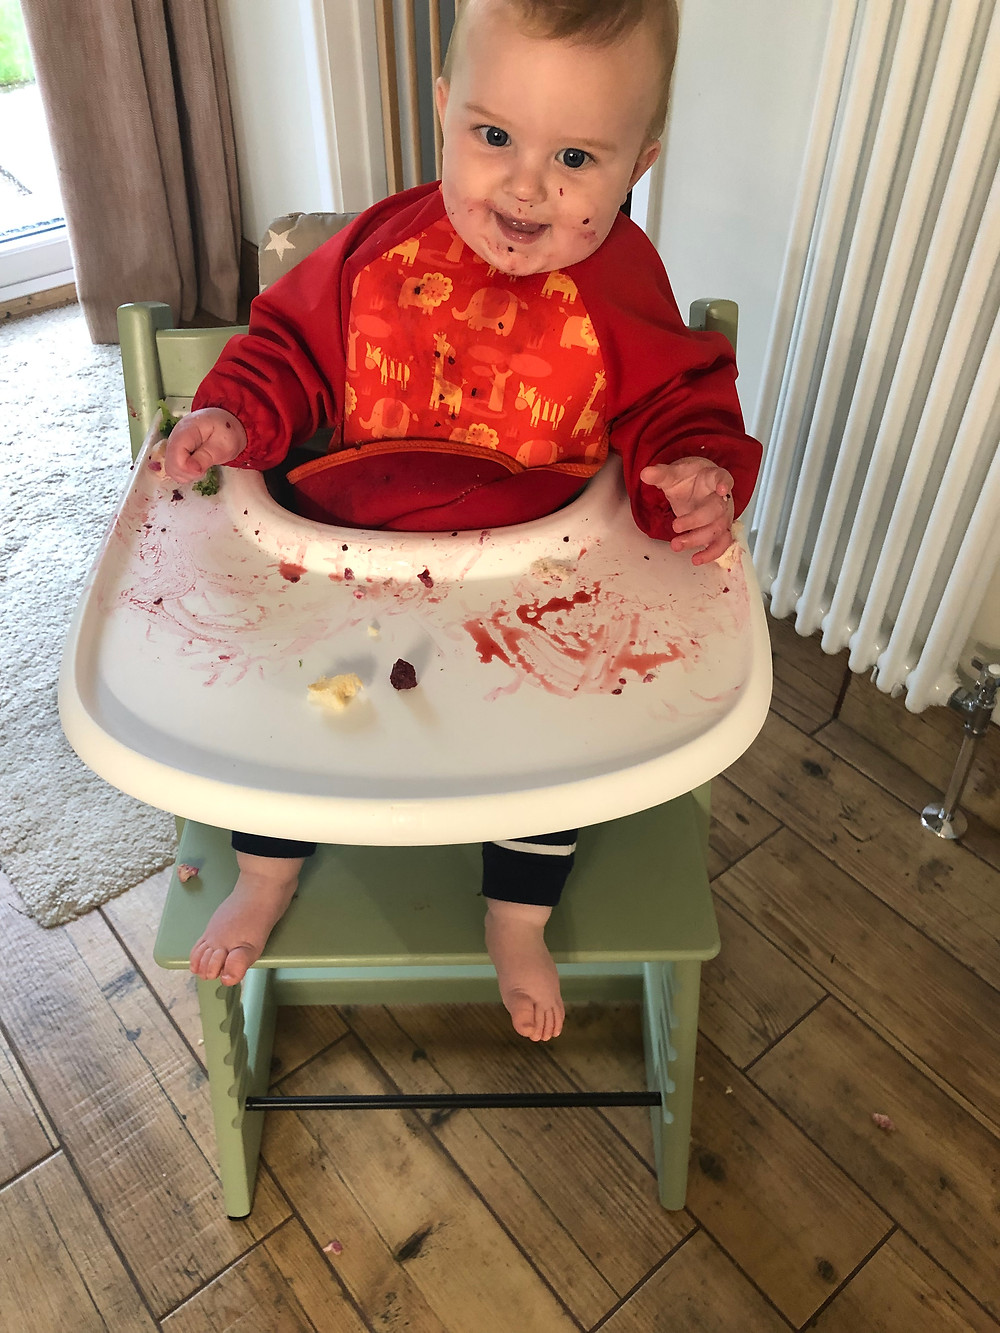 Premature baby weaning in high chair introducing solids